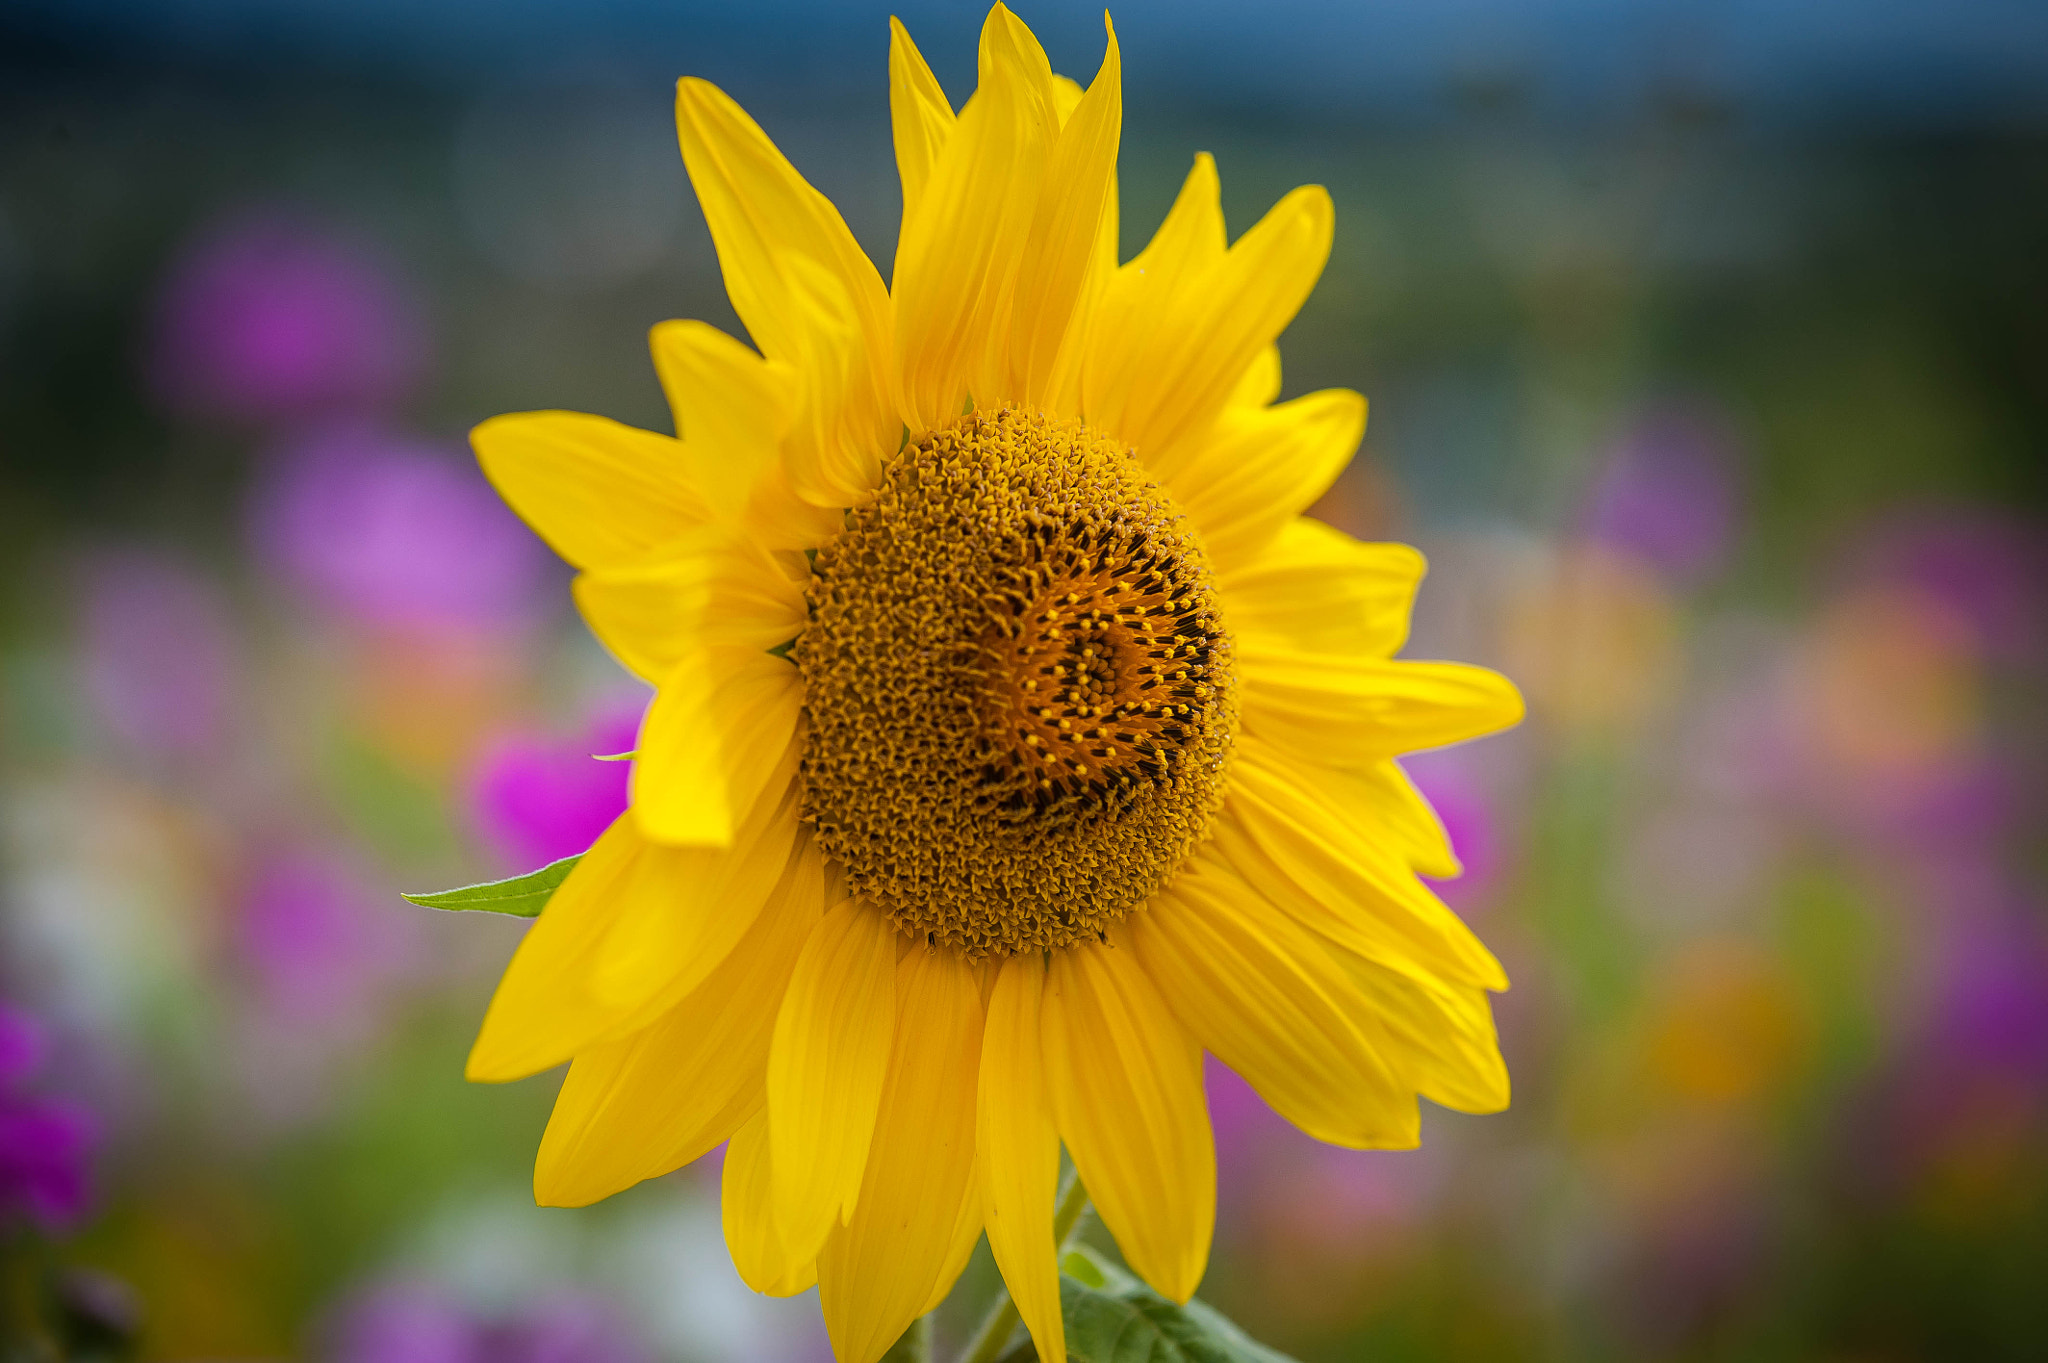 Photograph sun flower by serge vincent on 500px